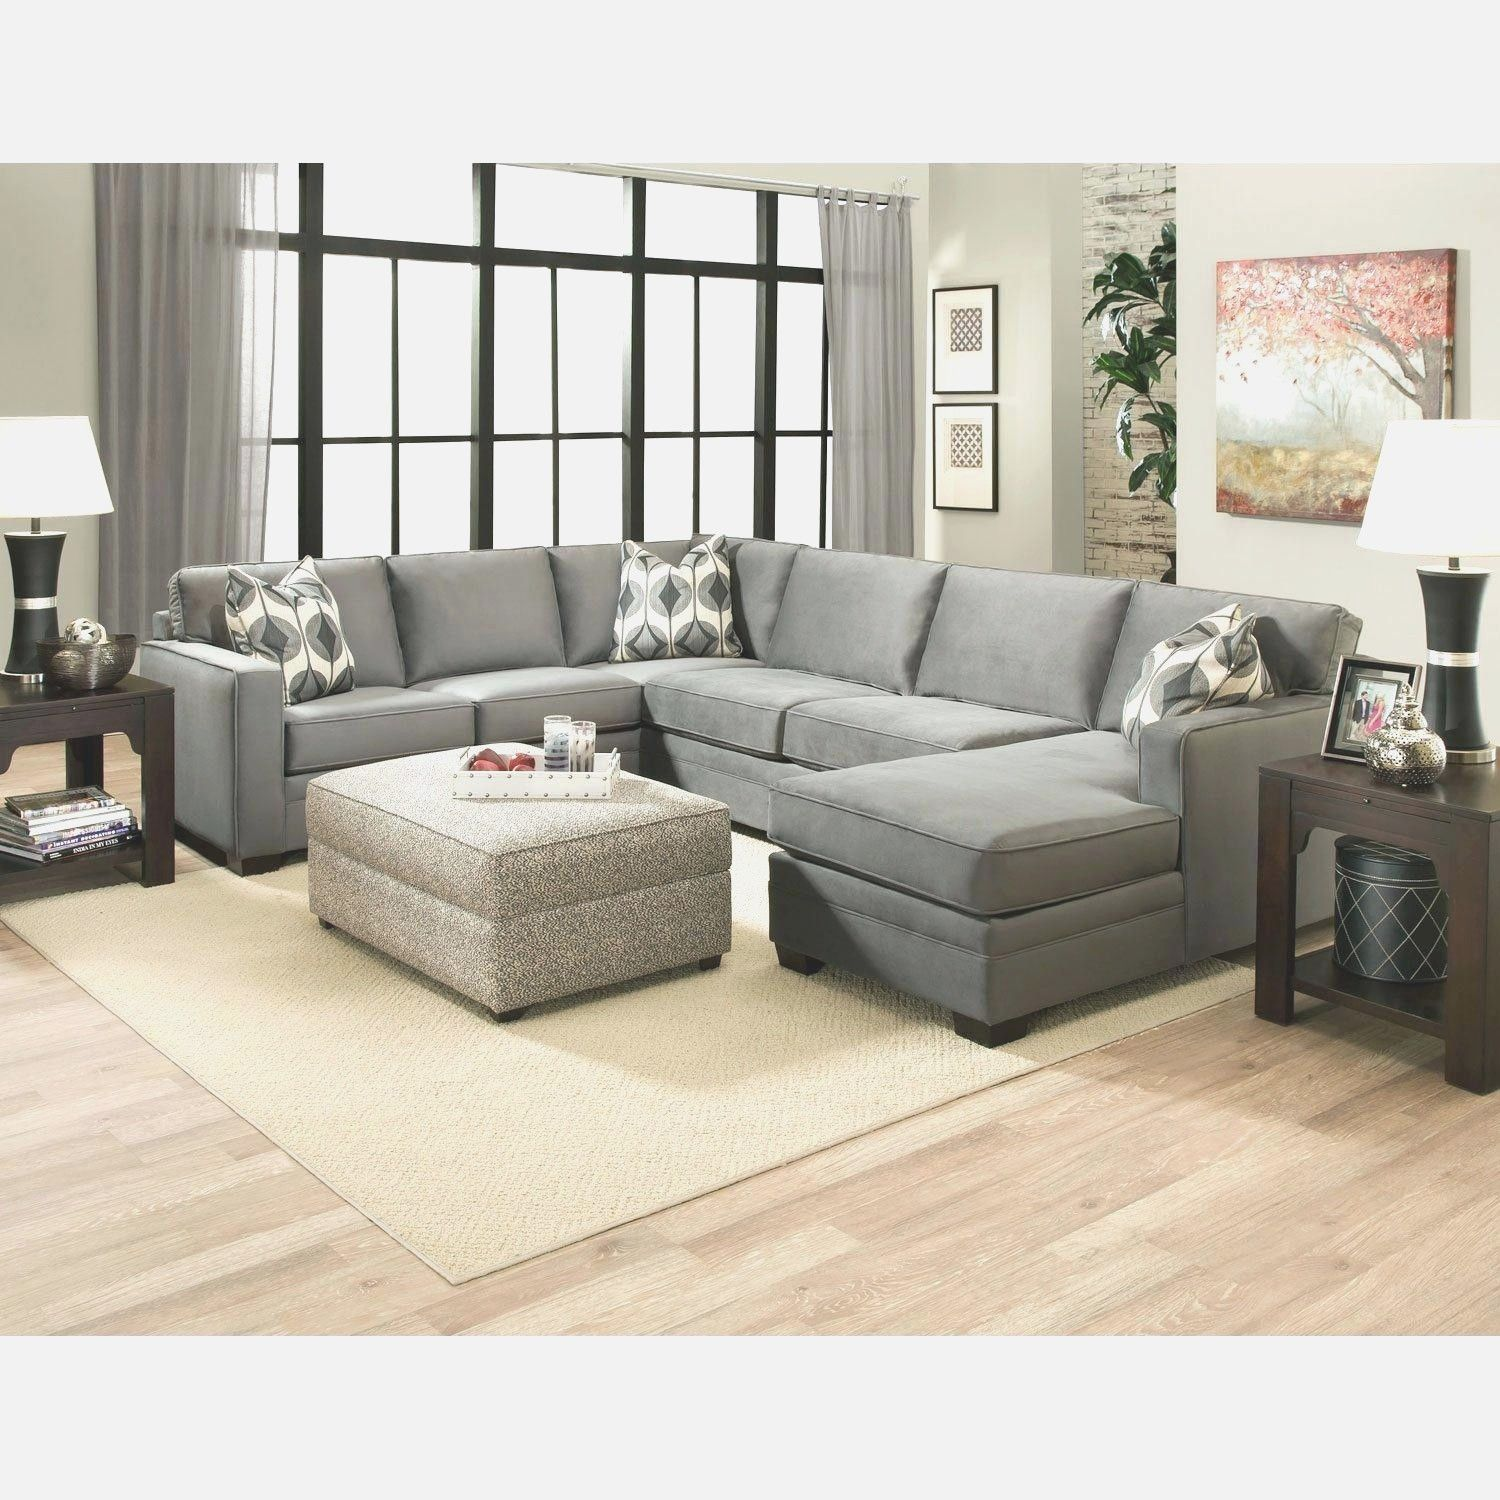 Sectional Sofas With Recliners And Chaise Microfiber Sectional Sofa With Recliner And Sectional Sofa With Chaise Sectional Sofa Sectional Sofa With Recliner